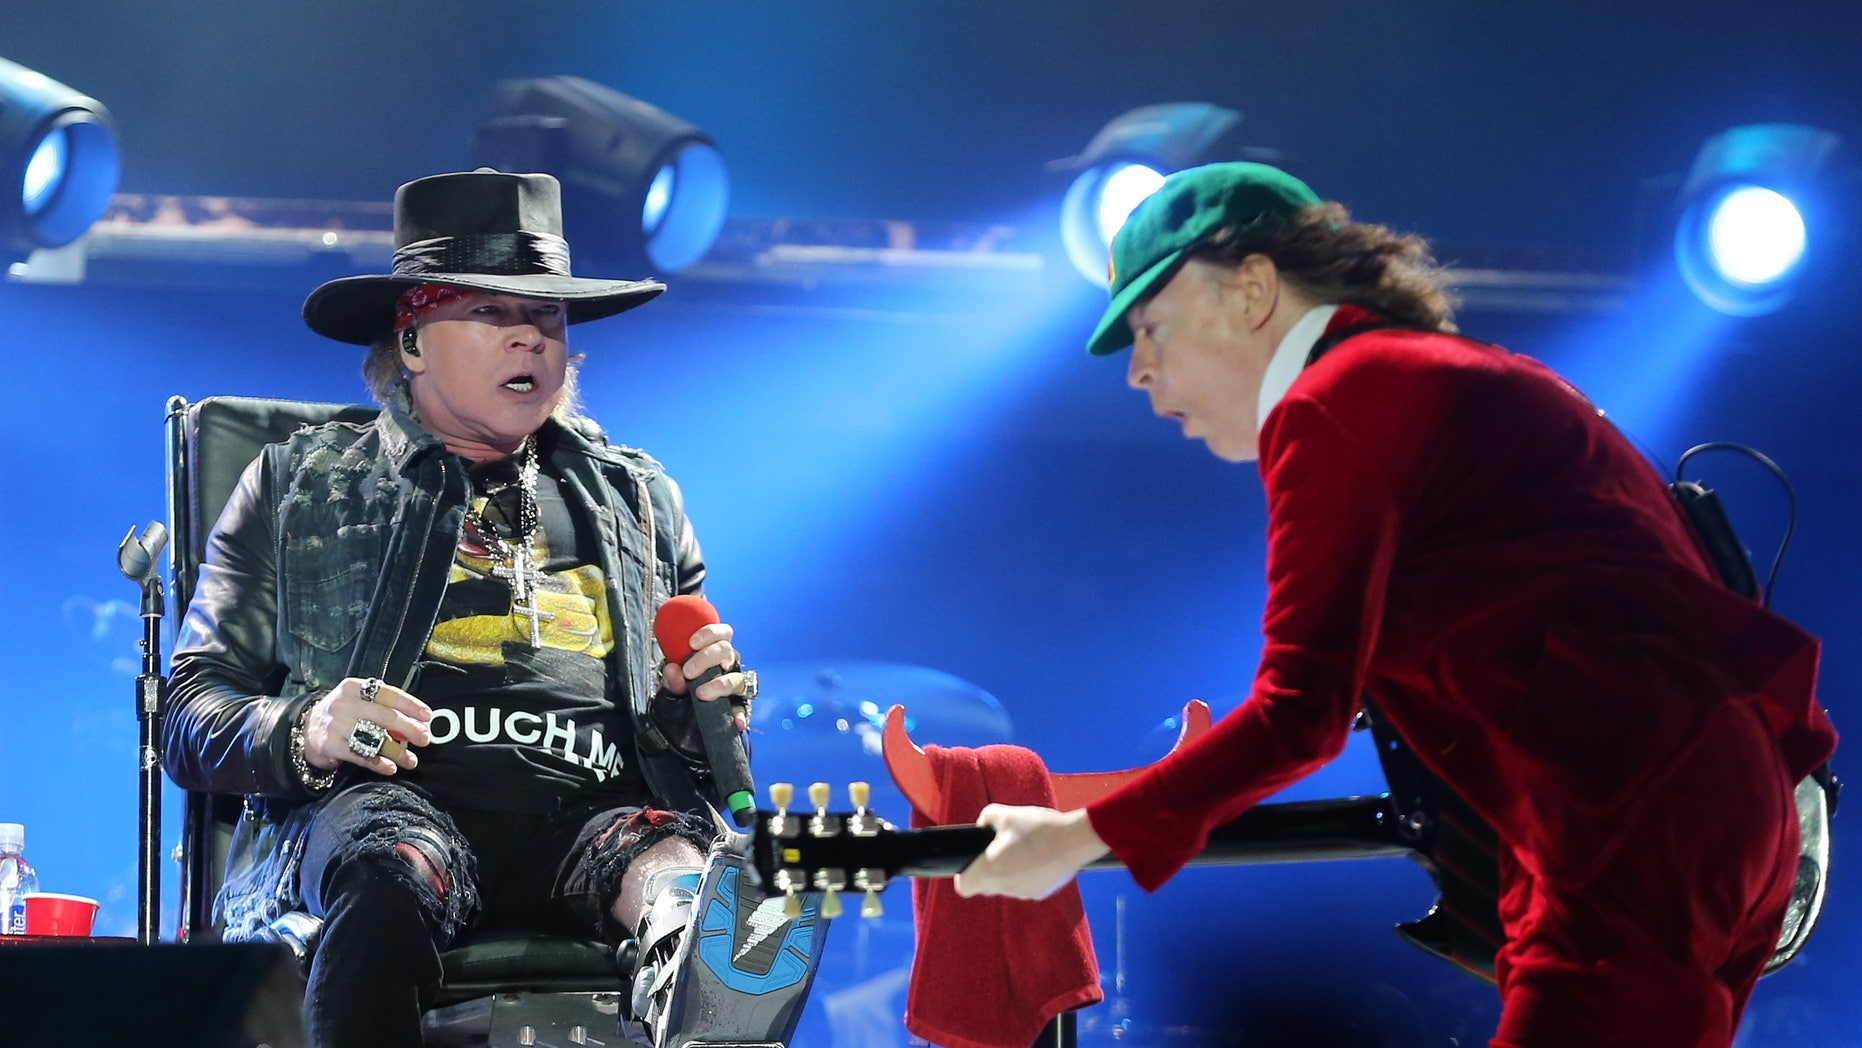 Guns N' Roses singer Axl Rose, left, watches AC/DC lead guitar player Angus Young perform during the concert of Australian rock band AC/DC in Lisbon Saturday night, May 7, 2016.